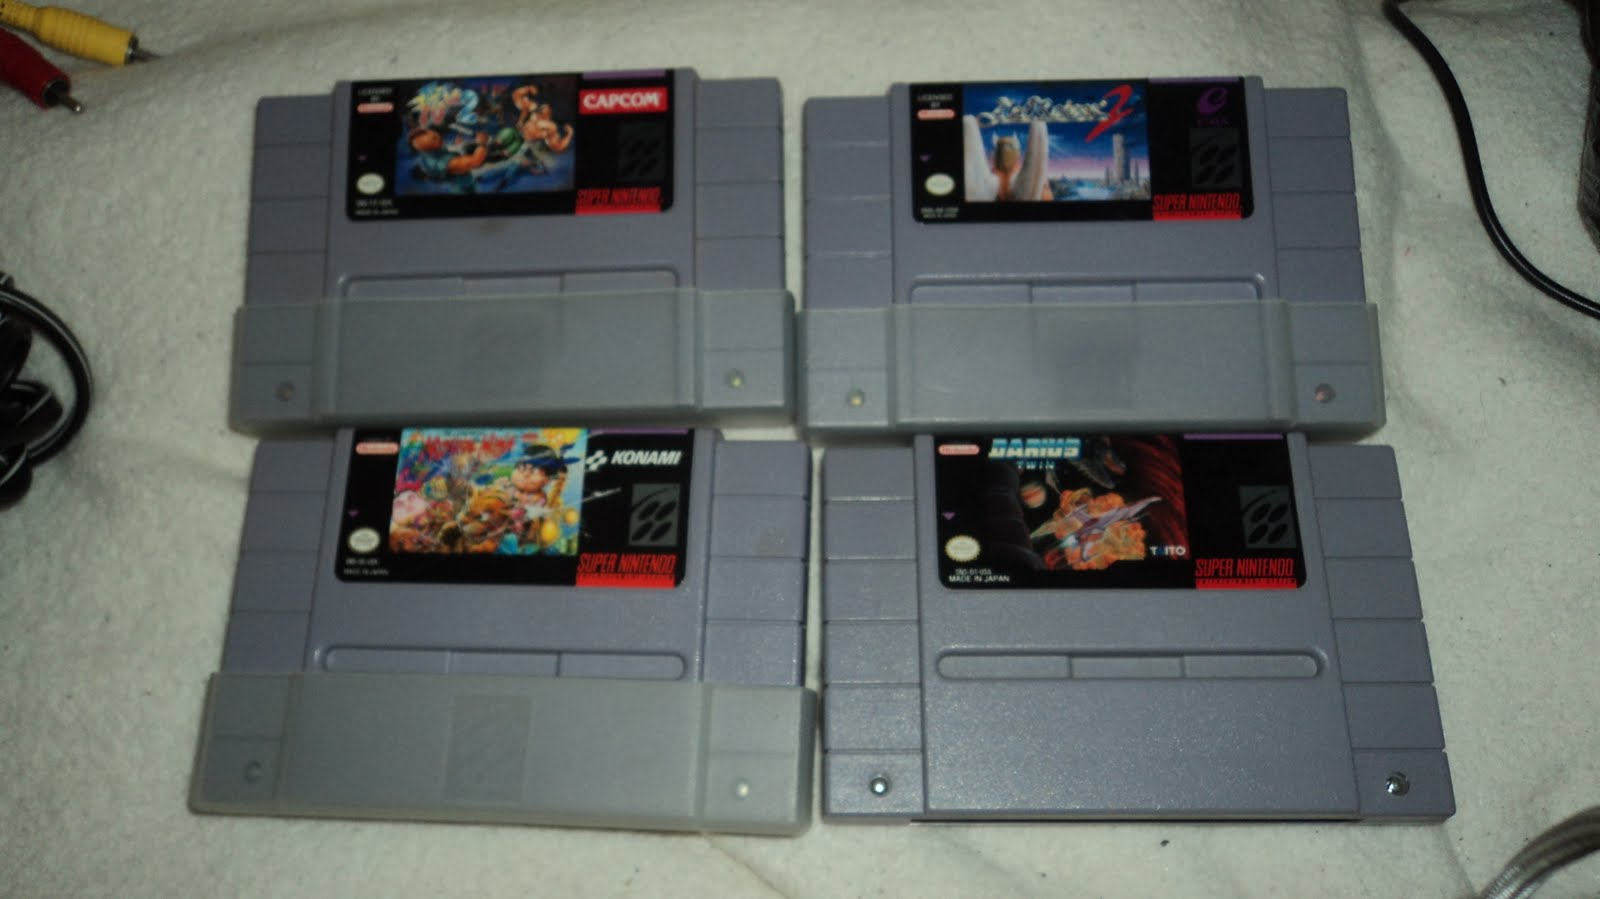 Picked up these snes games for 1 95 each the games are final fight